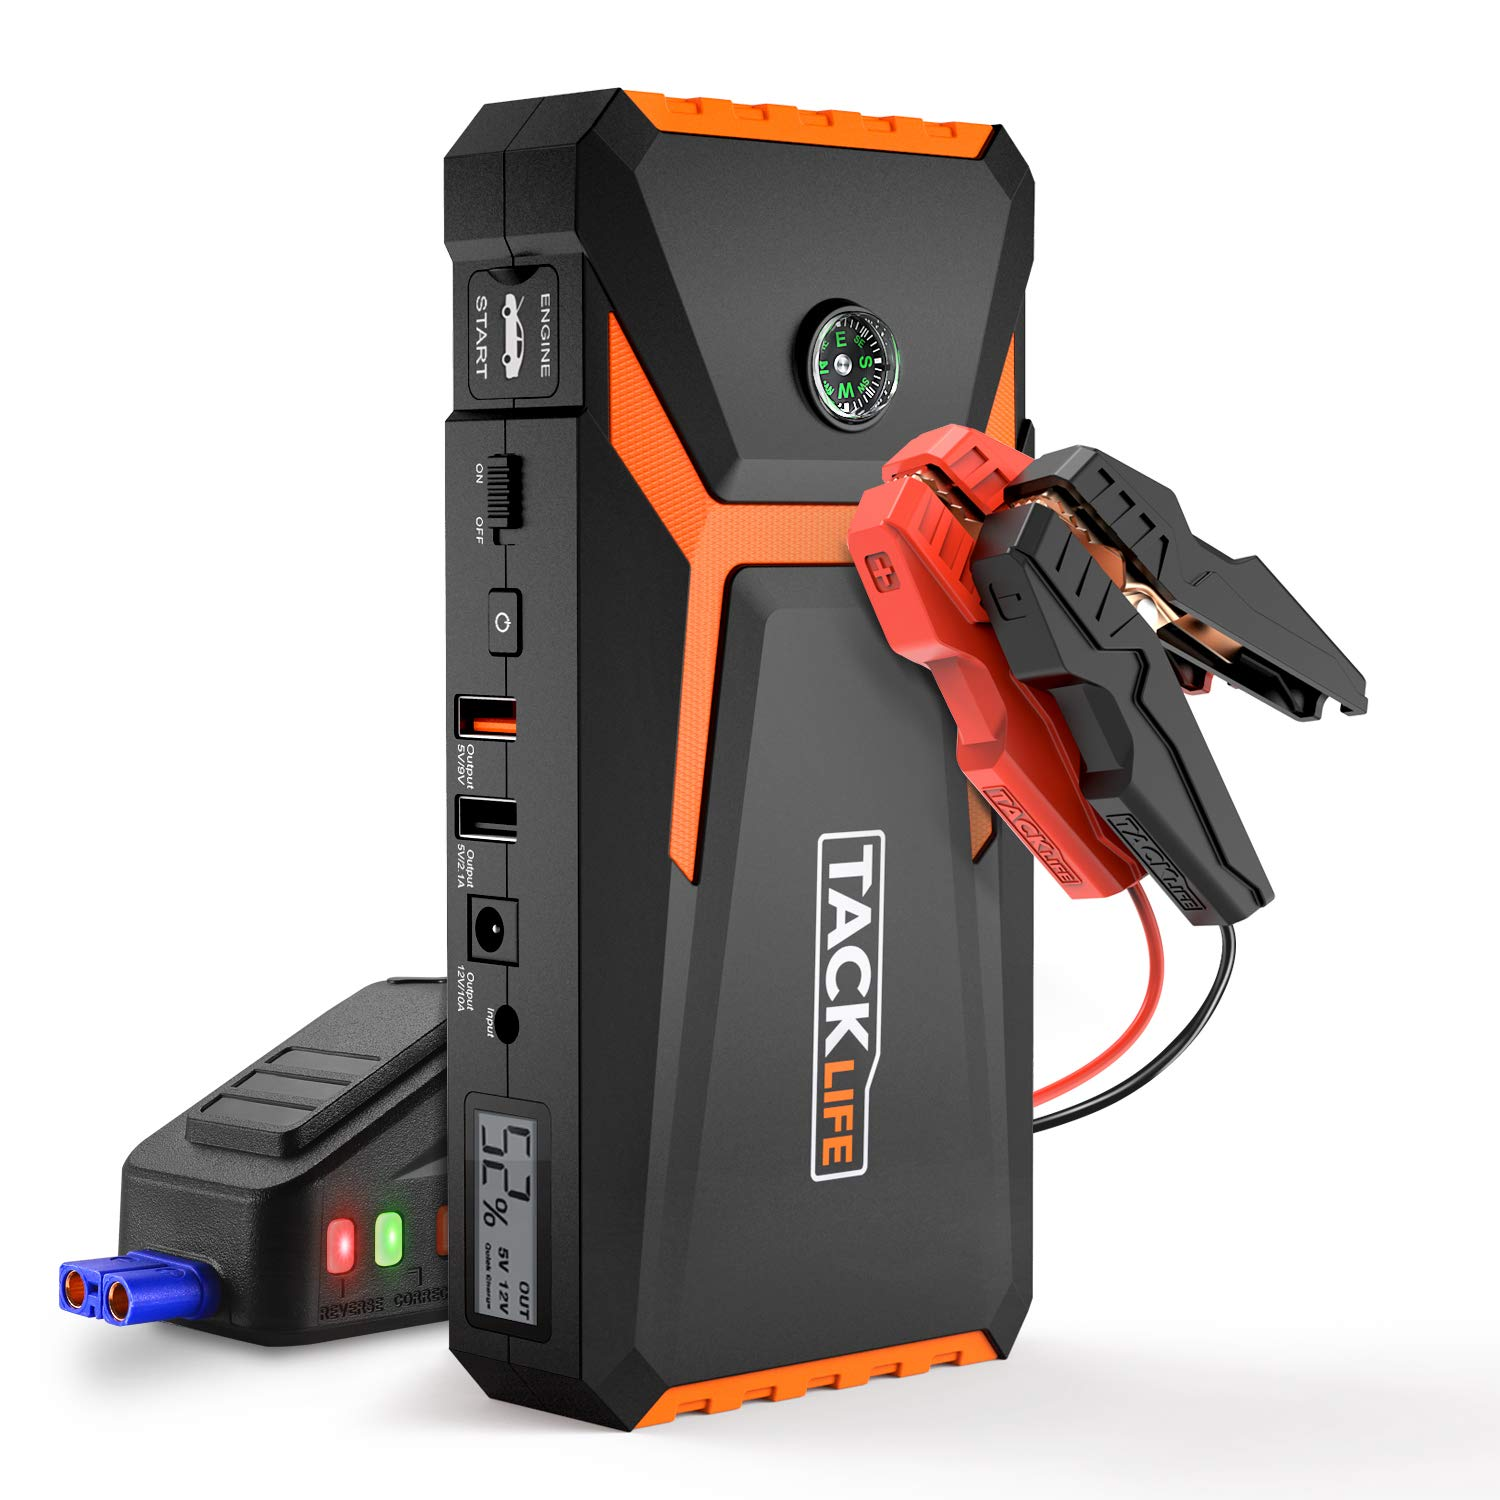 TACKLIFE T8 800A Peak 18000mAh Car Jump Starter (up